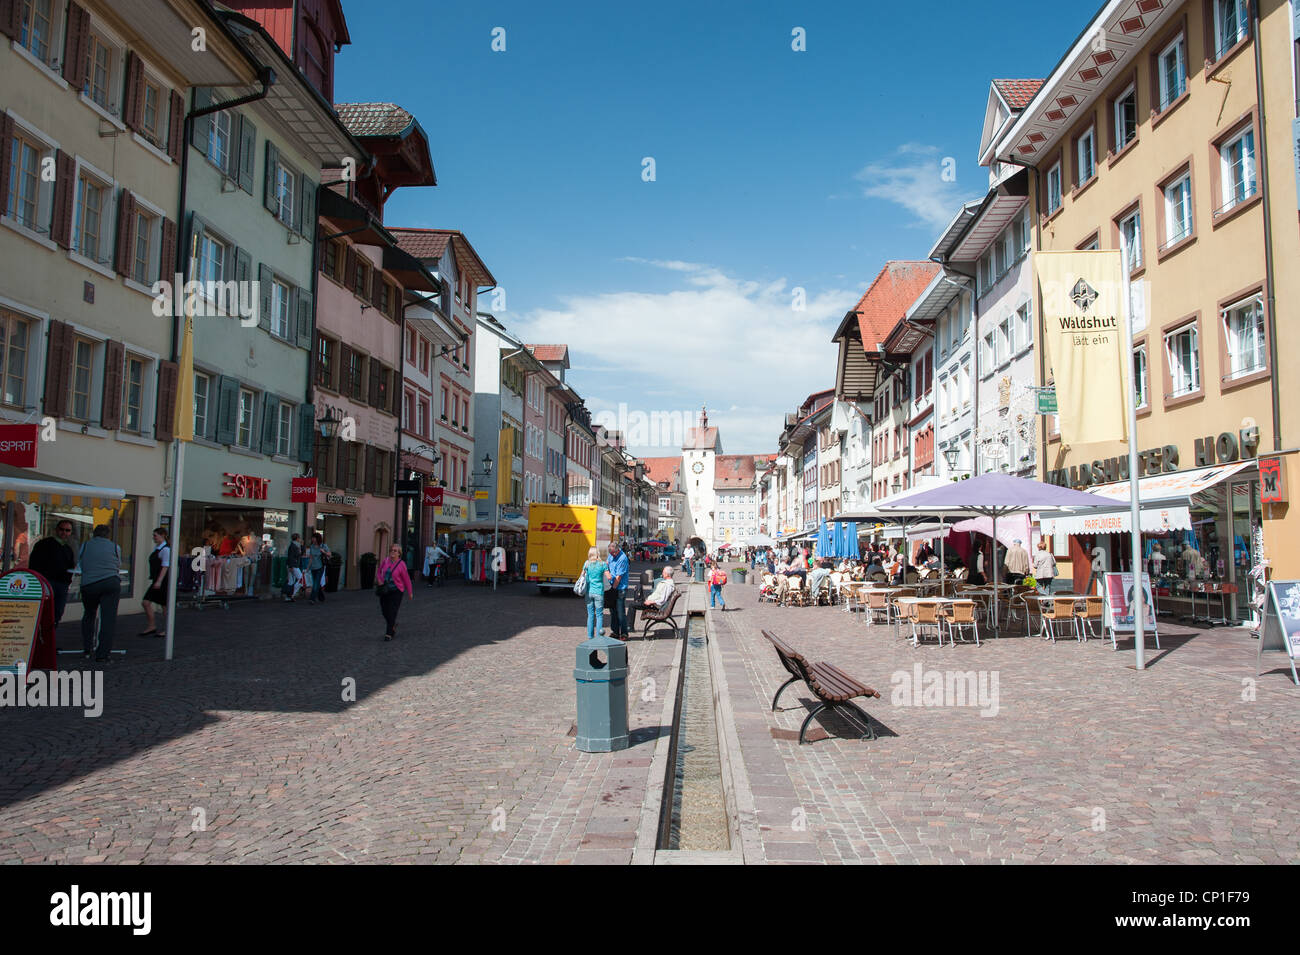 Historic city center of the town Waldshut, Germany, 2012 - Stock Image